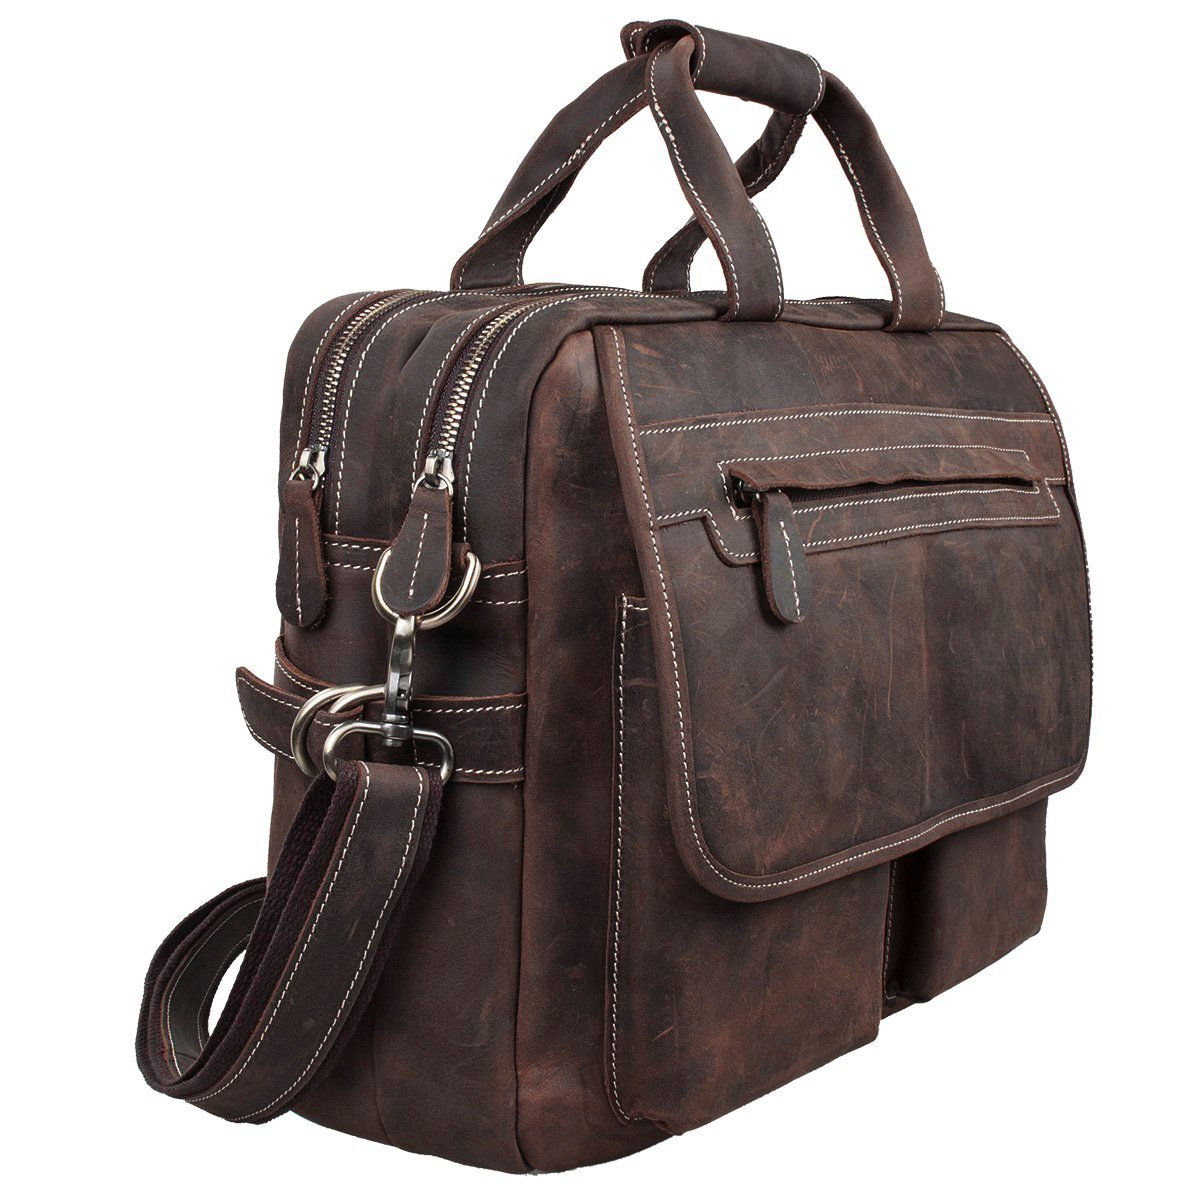 S-ZONE Crazy Horse Leather Shoulder Briefcase for 16 Inch Laptop Bag by S-ZONE (Image #4)